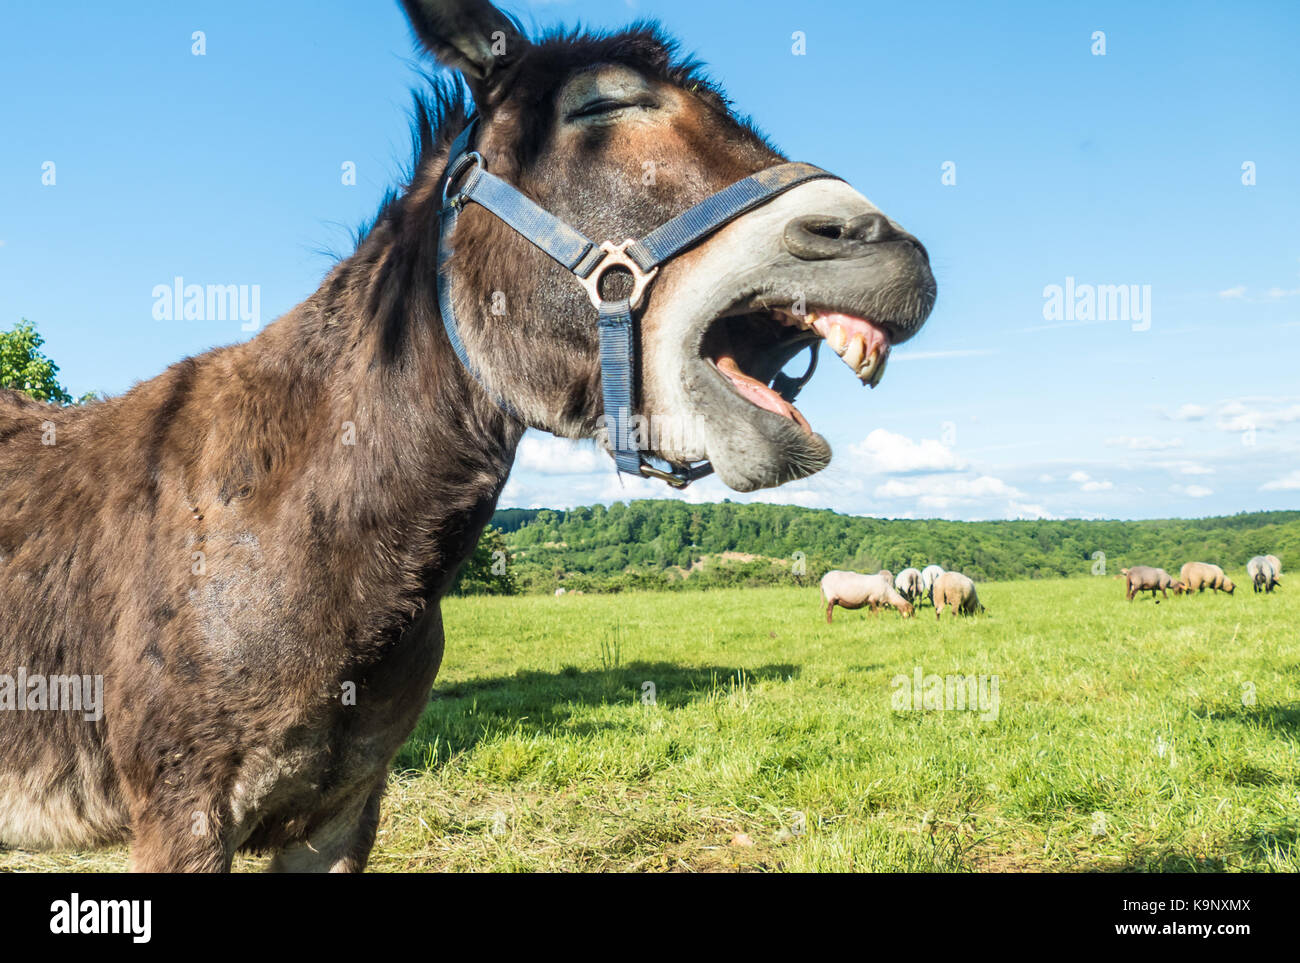 Funny laughing donkey face Stock Photo: 160907178 - Alamy - photo#22